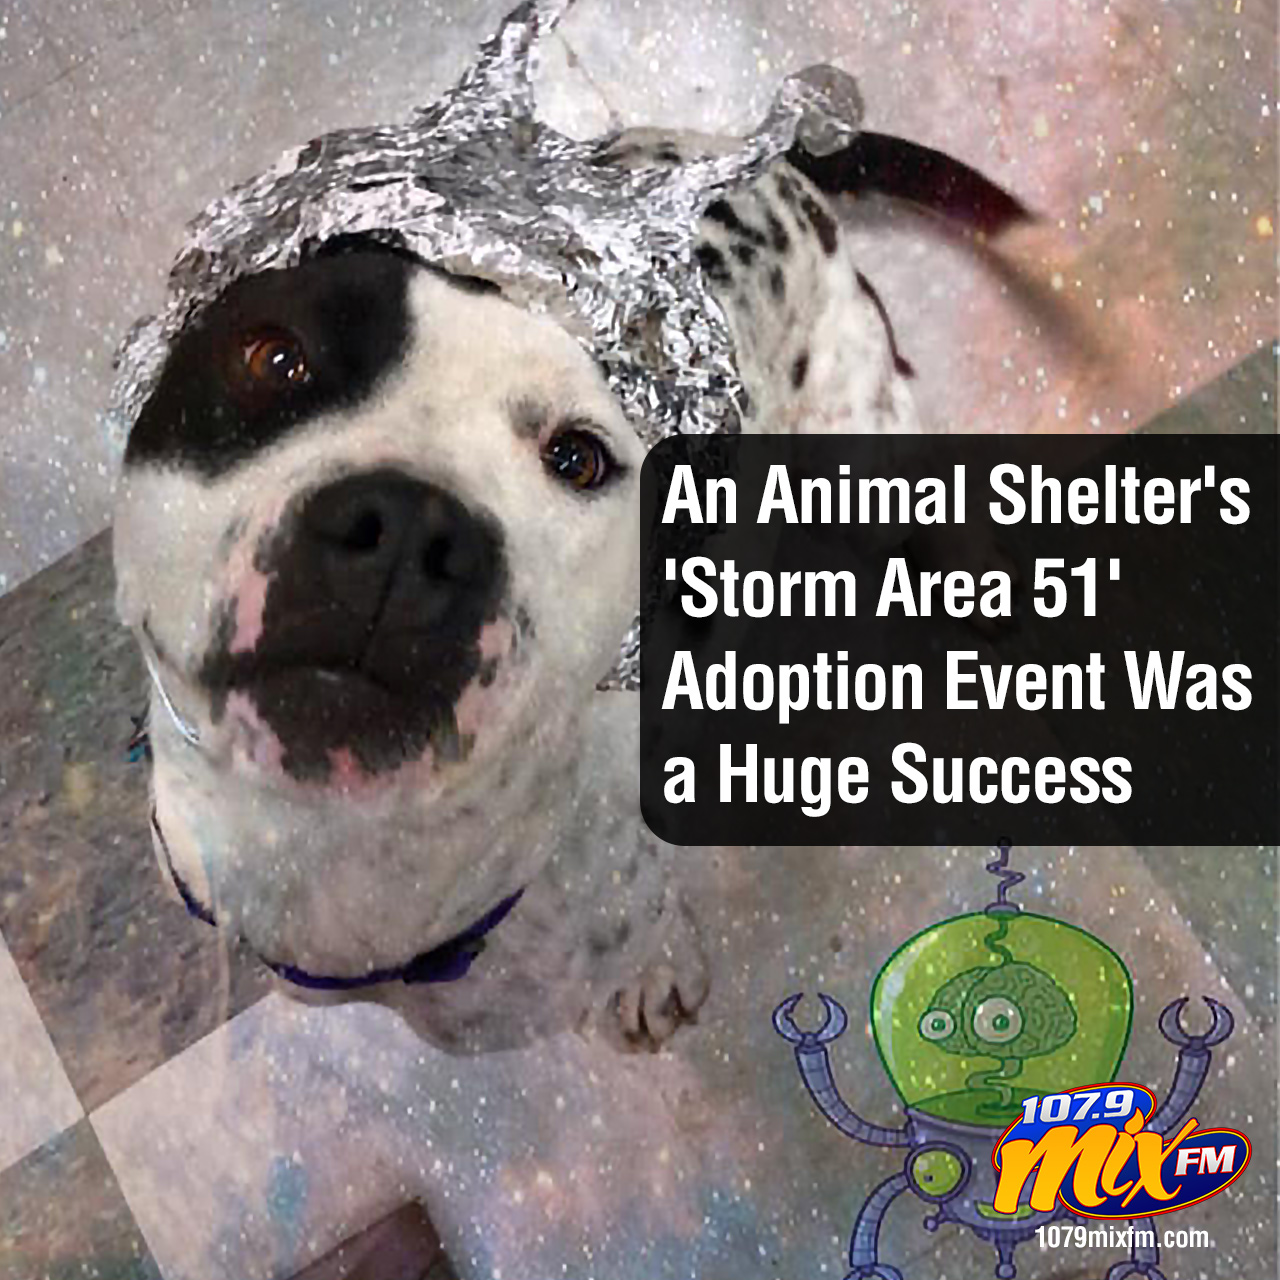 An Animal Shelter's 'Storm Area 51' Adoption Event Was a Huge Success